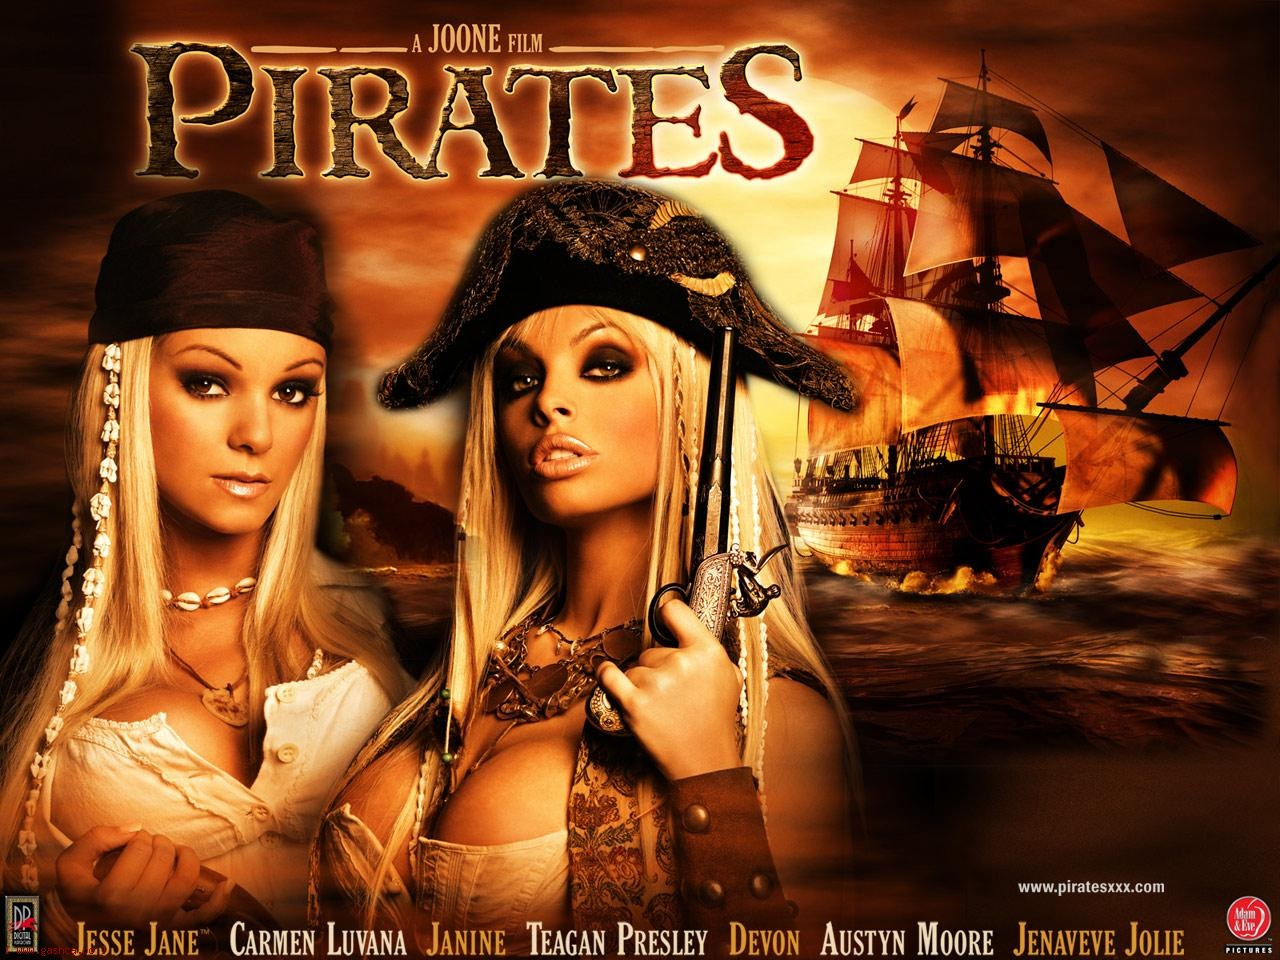 Pirates porn for women nackt stripers